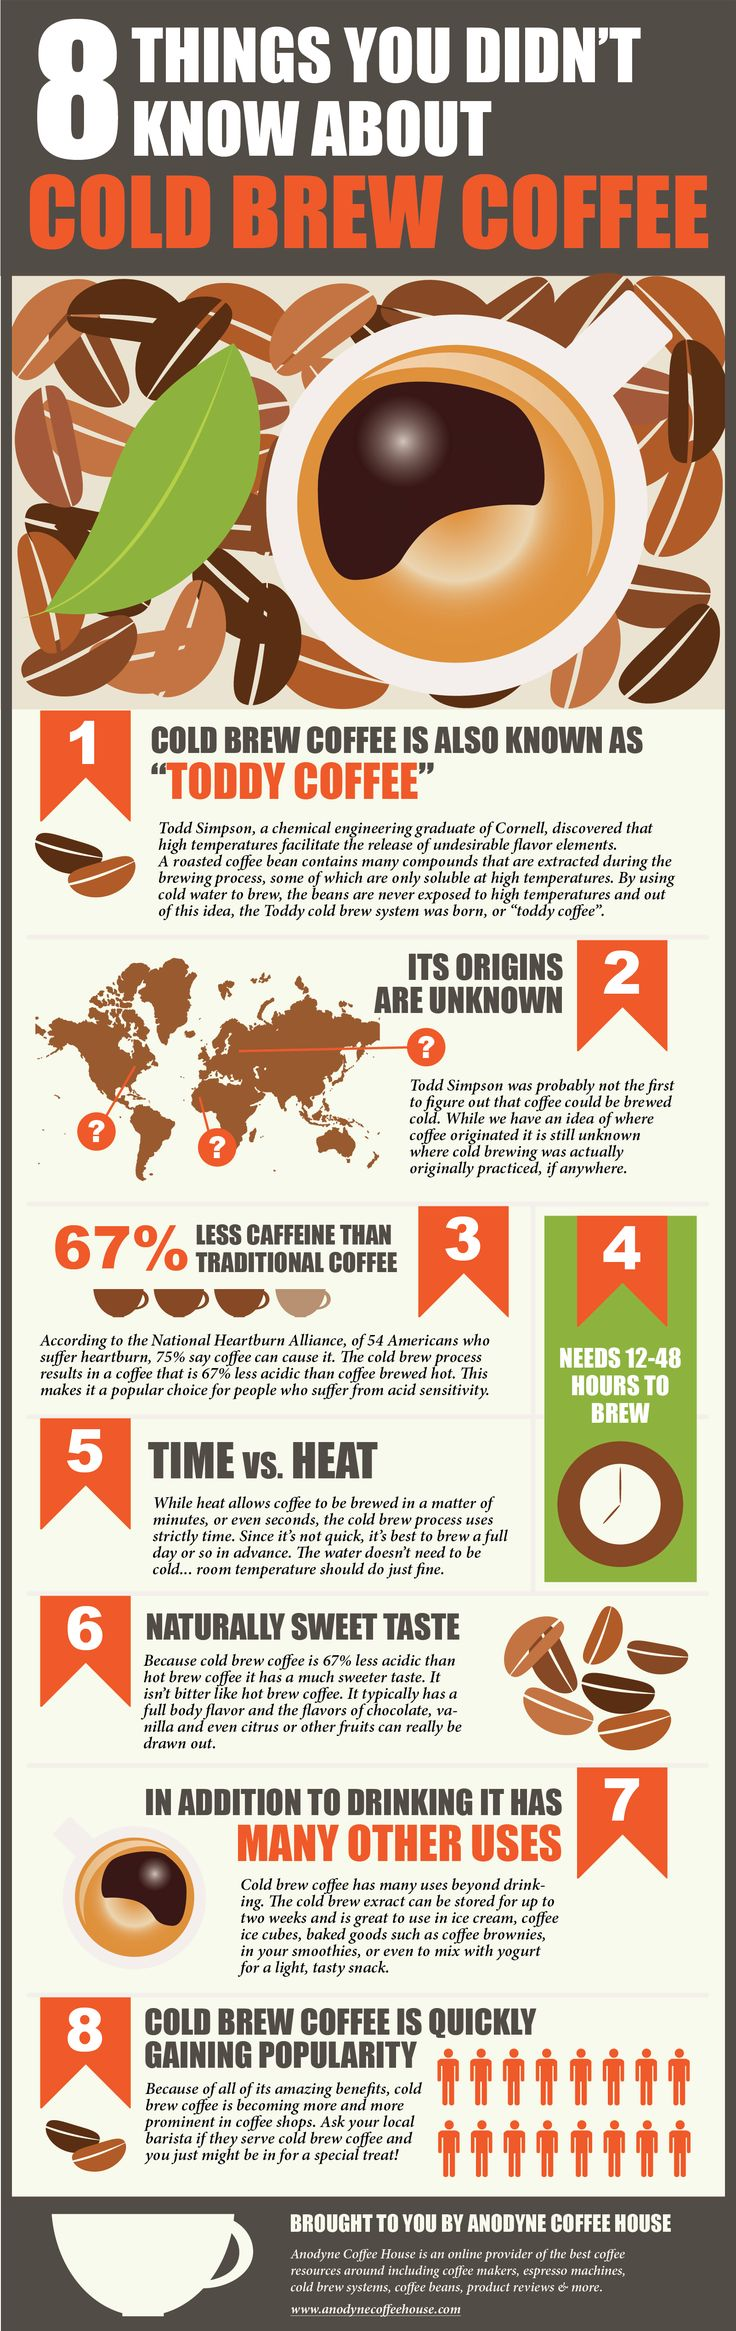 8 Things You Didn't Know About Cold Brew Coffee | anodynecoffeehouse.com #coffee #infographic